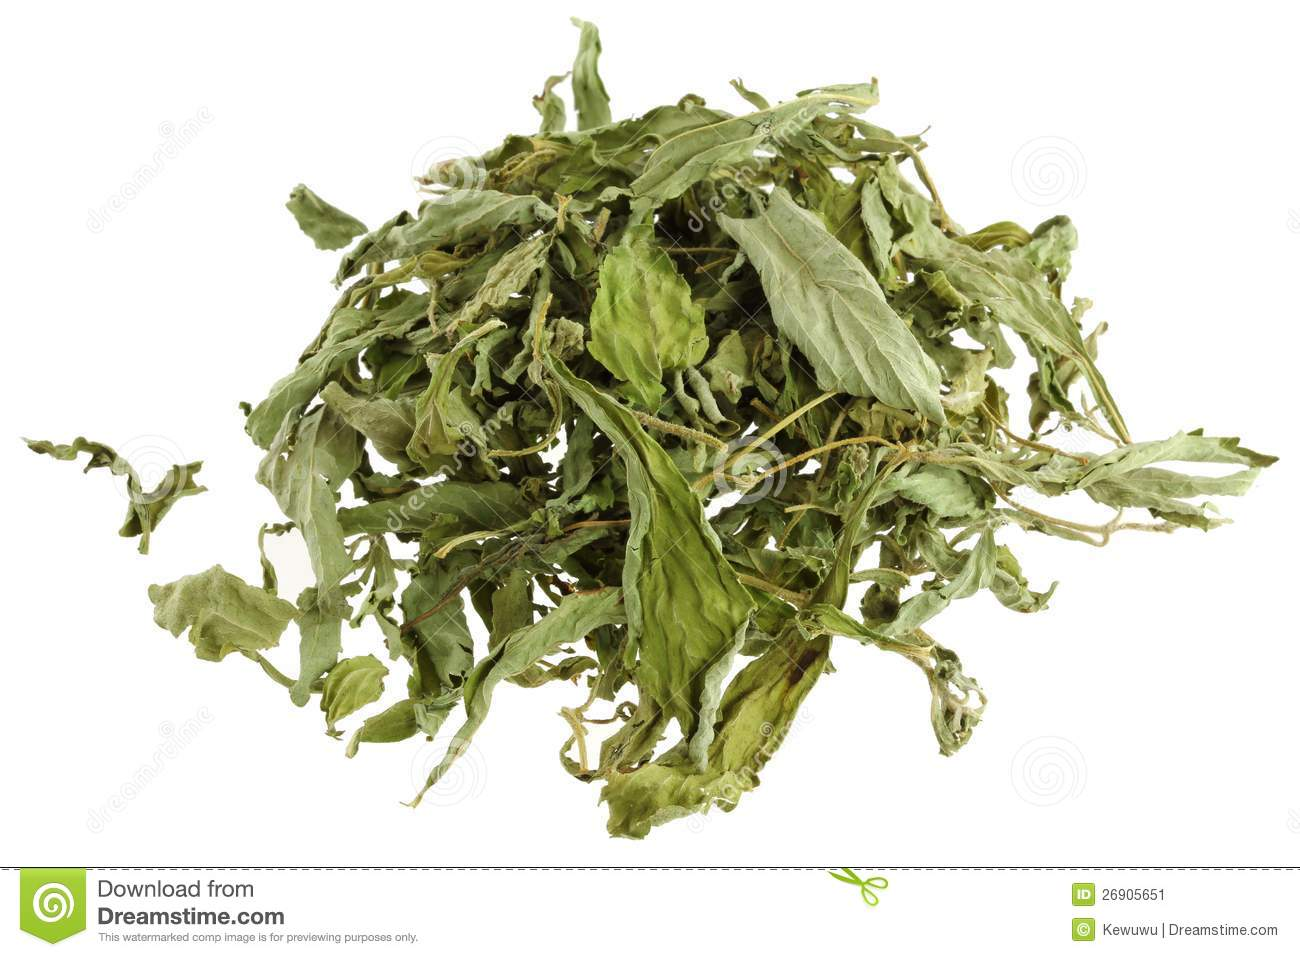 Dried Stevia leaves (sweet leaf, Sugar leaf)